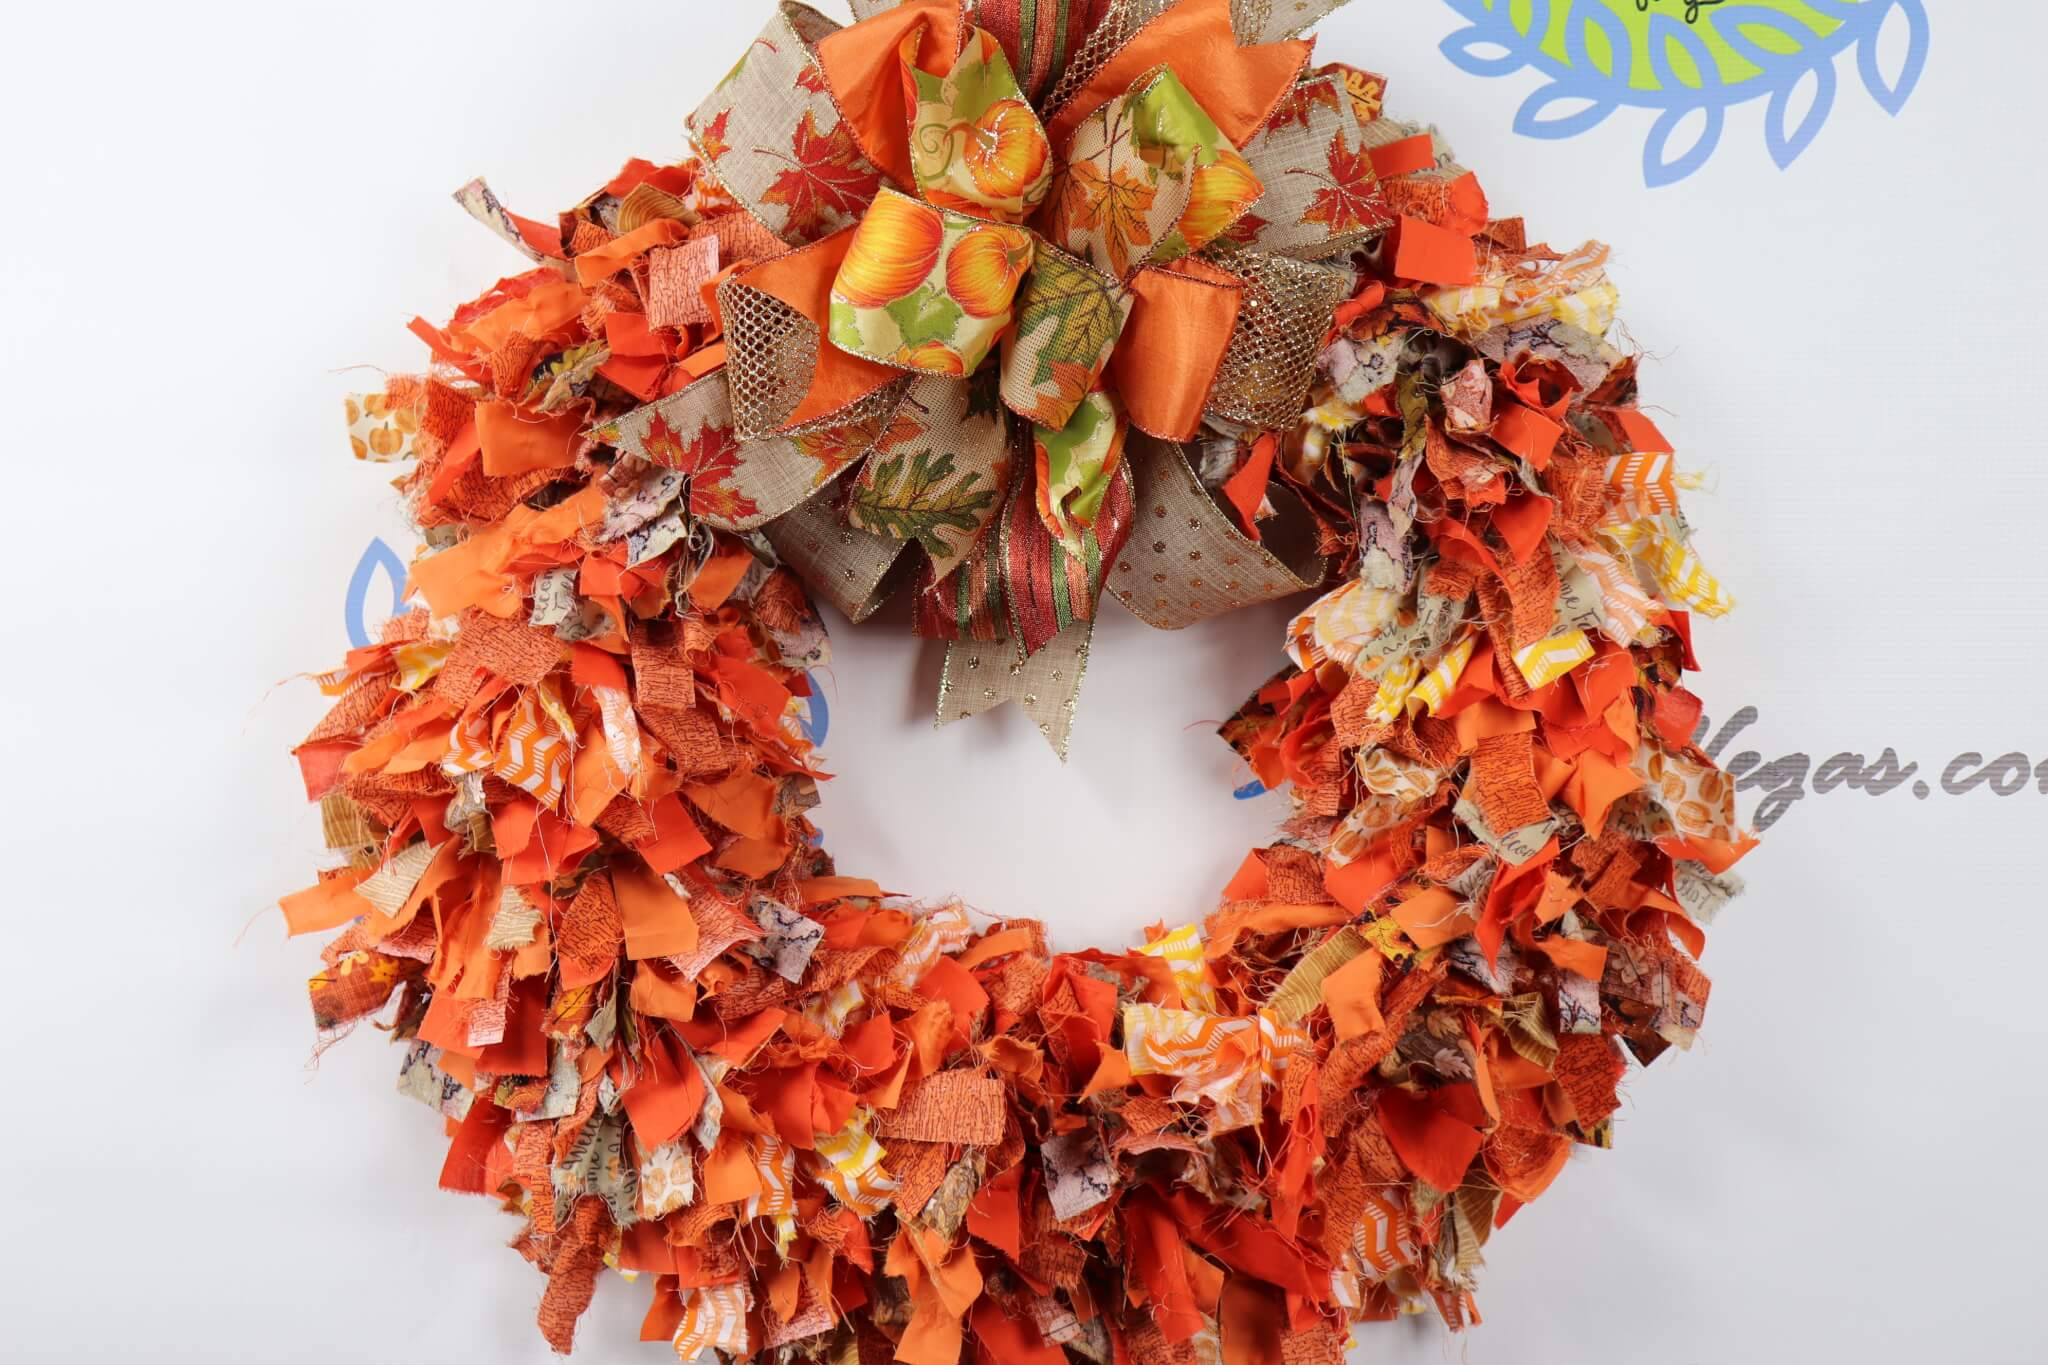 Fall-Fabric-Rag-Wreath-Orange-Brown-3 Autumn Orange Brown Fabric Rag Wreath